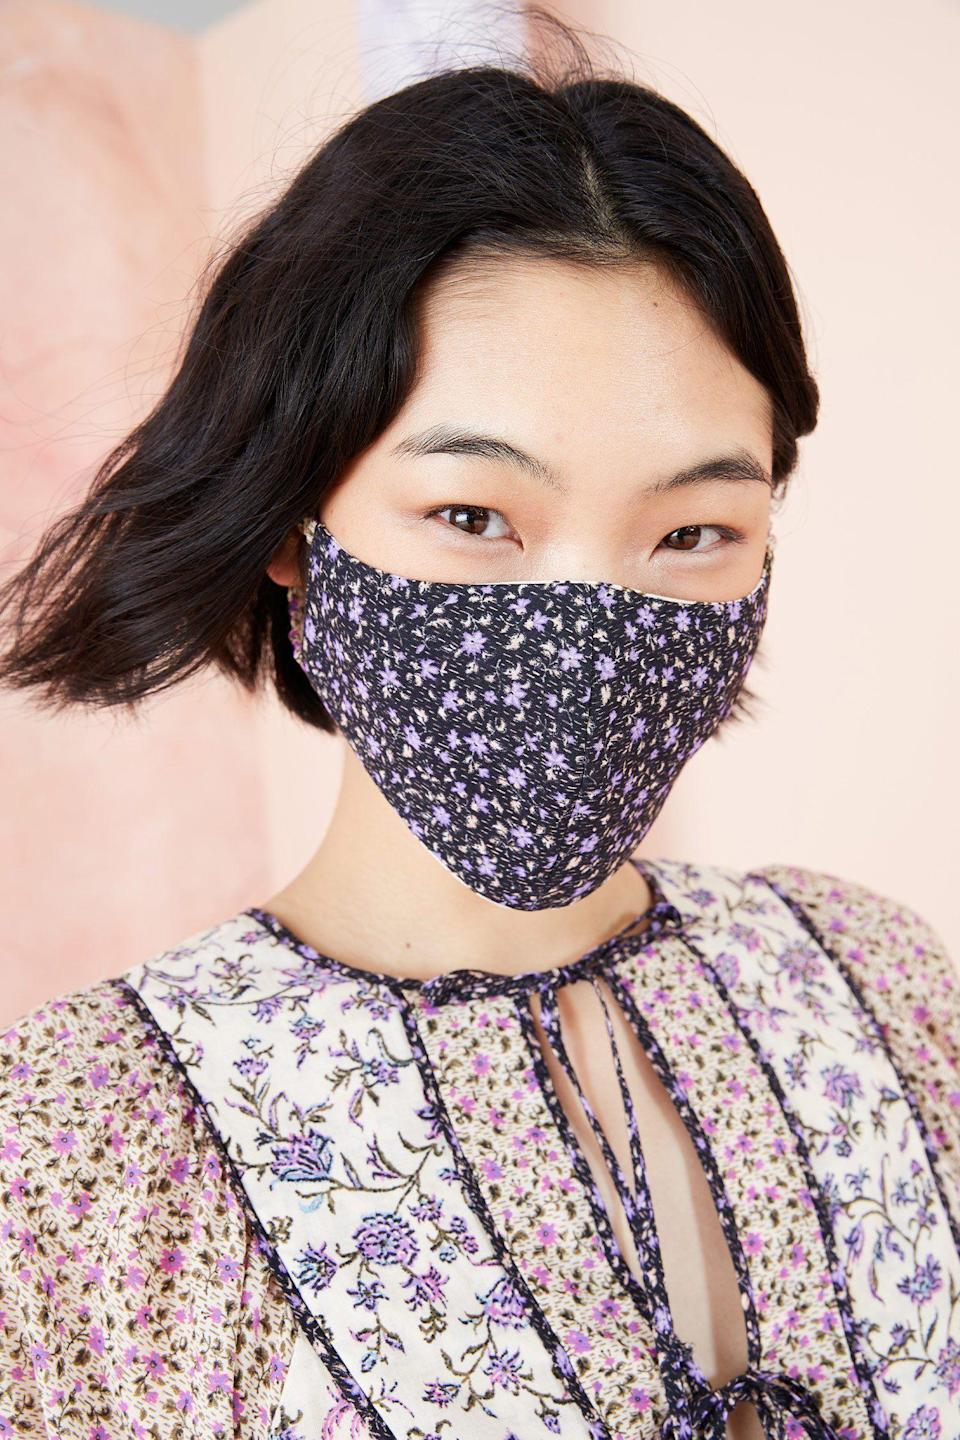 """<p><strong>Ulla Johnson</strong></p><p>ullajohnson.com</p><p><strong>$20.00</strong></p><p><a href=""""https://ullajohnson.com/collections/face-masks/products/face-mask-cream"""" rel=""""nofollow noopener"""" target=""""_blank"""" data-ylk=""""slk:Shop Now"""" class=""""link rapid-noclick-resp"""">Shop Now</a></p><p>For an elevated boho vibe, look to Ulla Johnson's cloth face masks. One hundred percent of the proceeds from each mask will be donated to City Harvest and our neighbors at the Bowery Mission.</p>"""